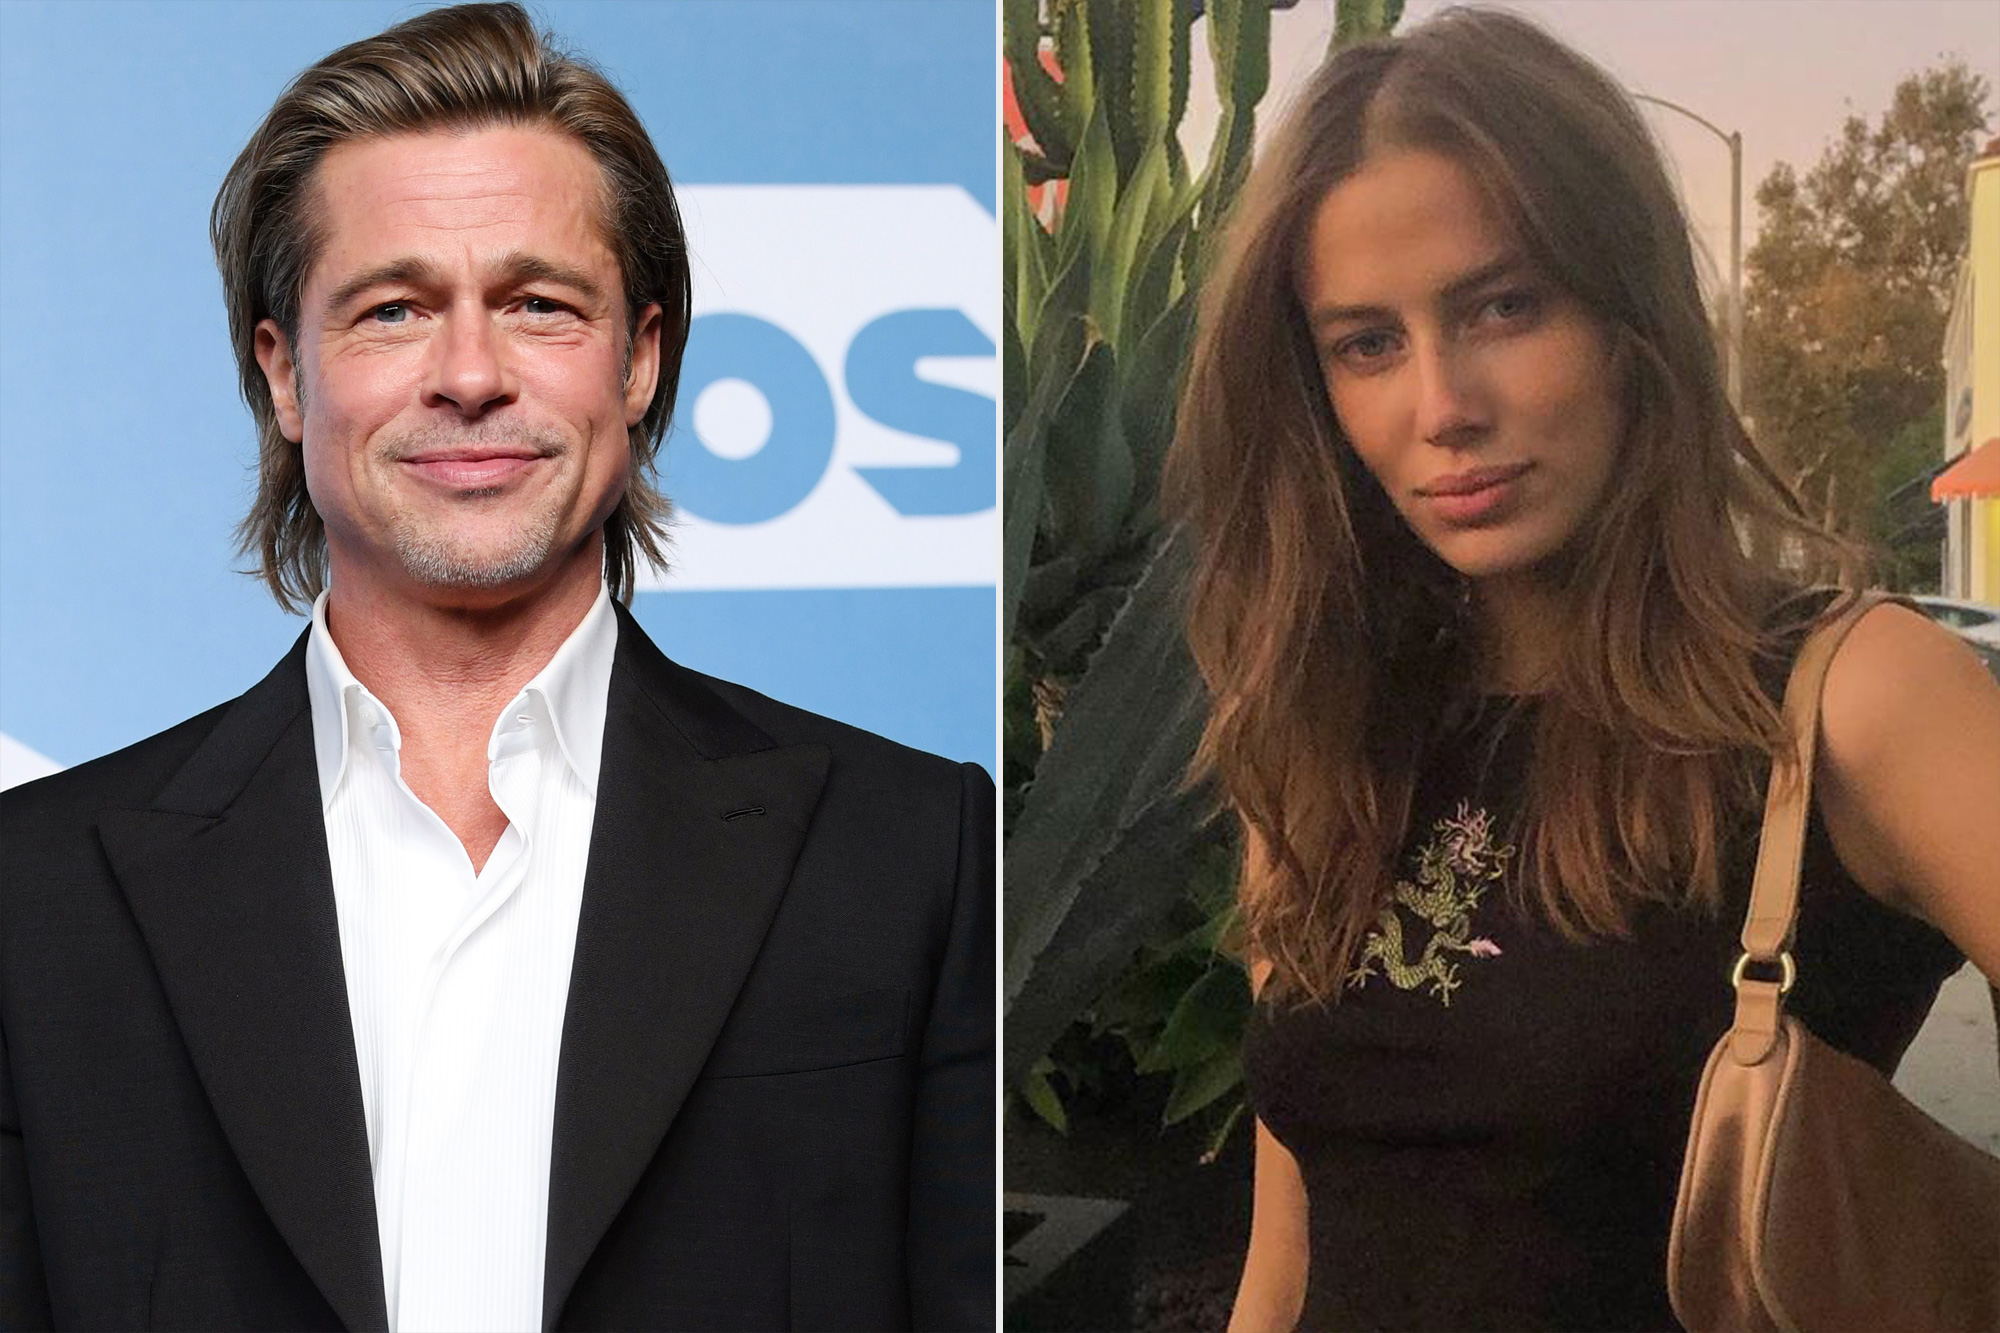 Brad Pitt, Nicole Poturalski Breakup Rumors and Real Truth